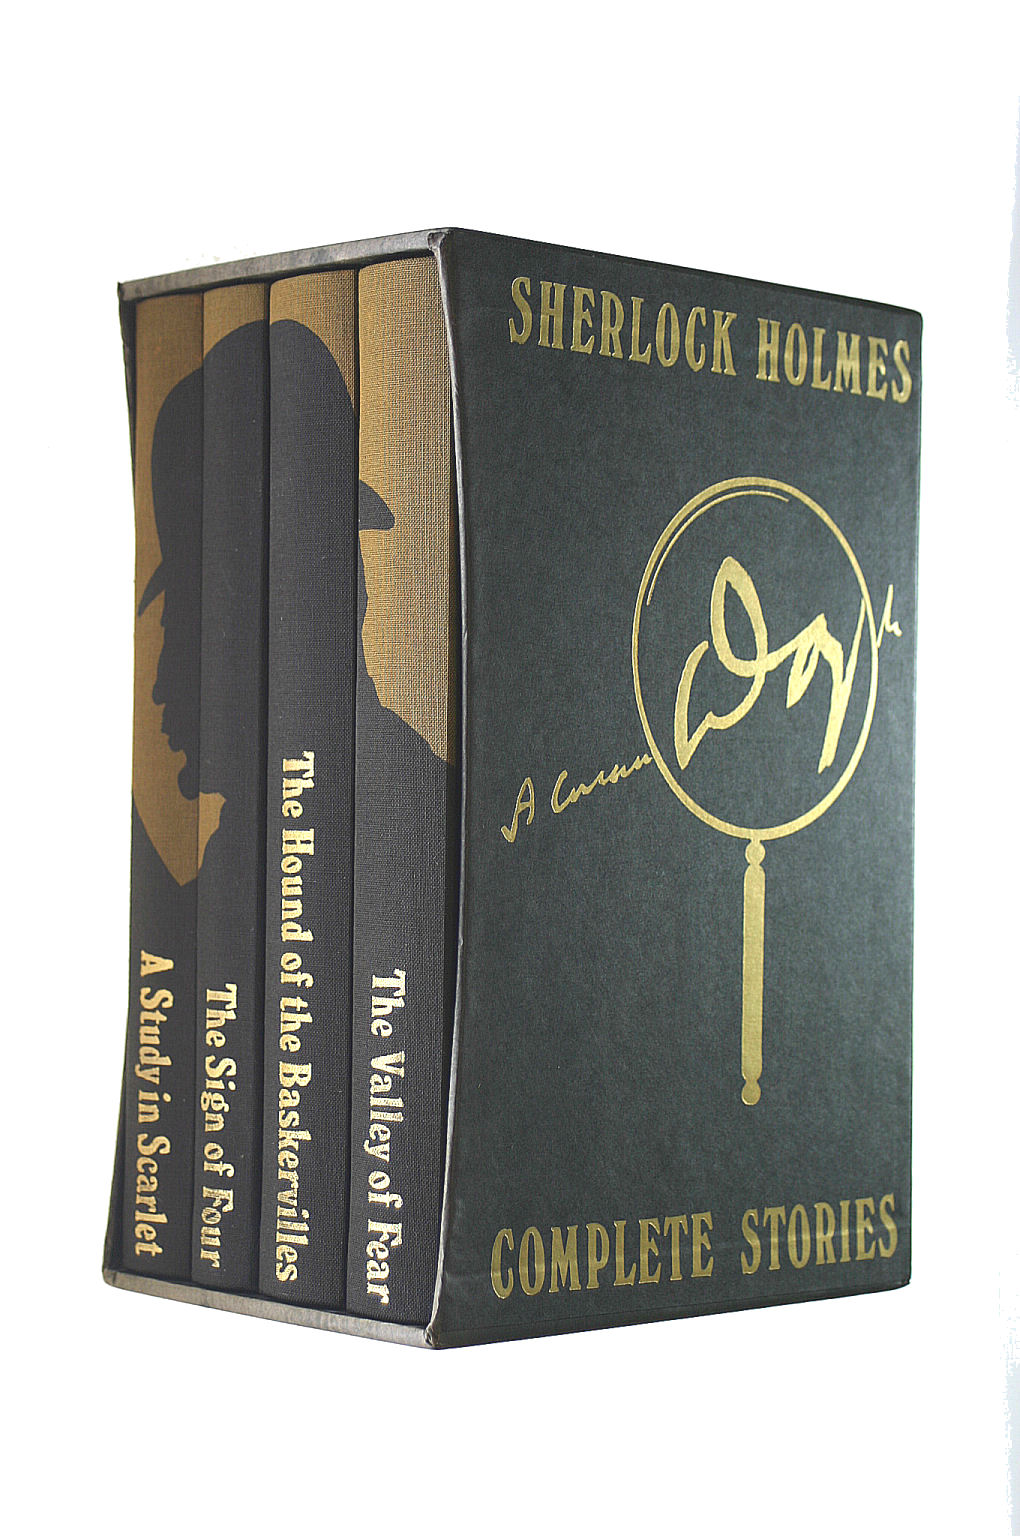 Image for Sherlock Holmes. Complete Stories. Four Volume Set In Slipcase....A Study In Scarlet/The Sign Of Four/The Hound Of The Baskervilles & The Valley Of Fear. Illustrated By Francis Mosley.